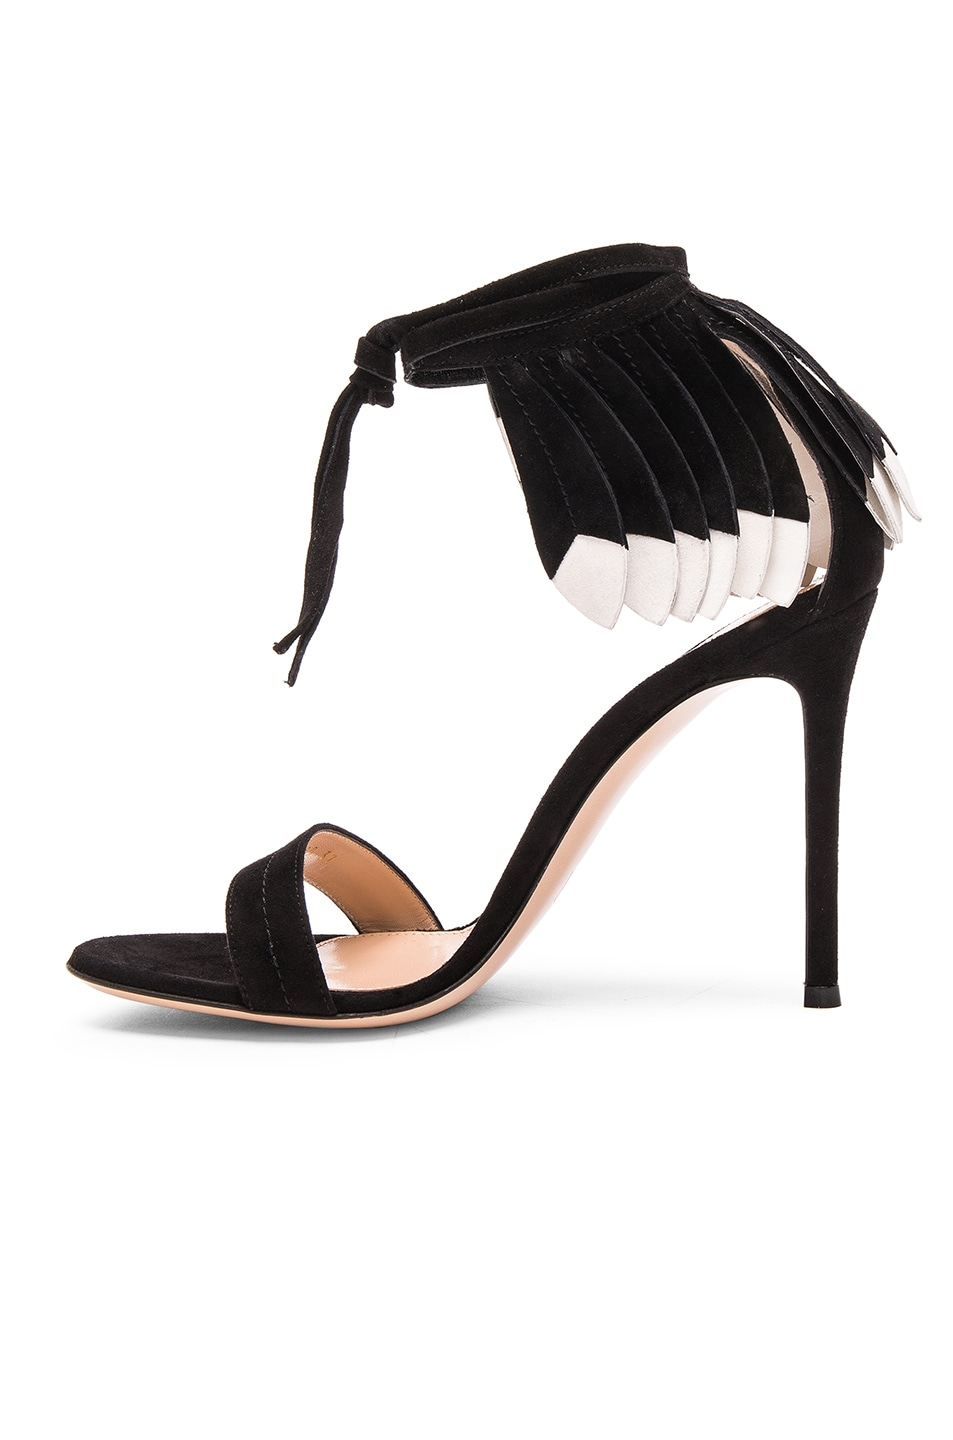 Image 5 of Gianvito Rossi Suede Feather Sandals in Black & White